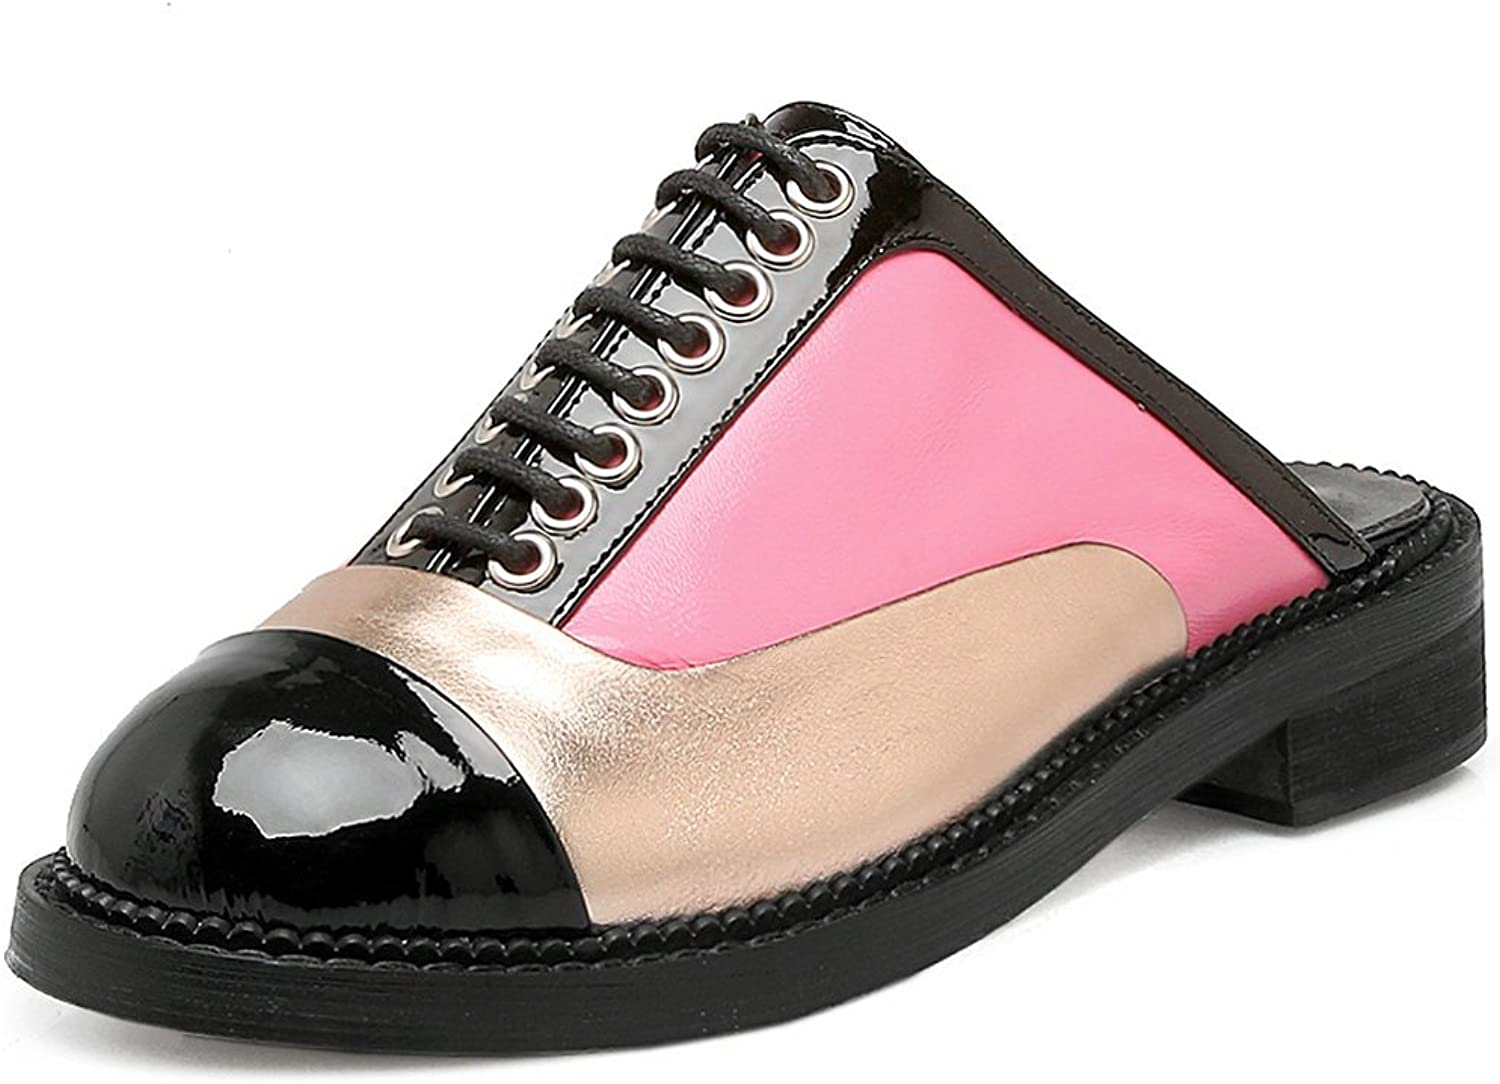 AIWEIYi Womens Round Toe Fashion Casual Comfort Patent Leather Low Heel Sandals Slippers Pink